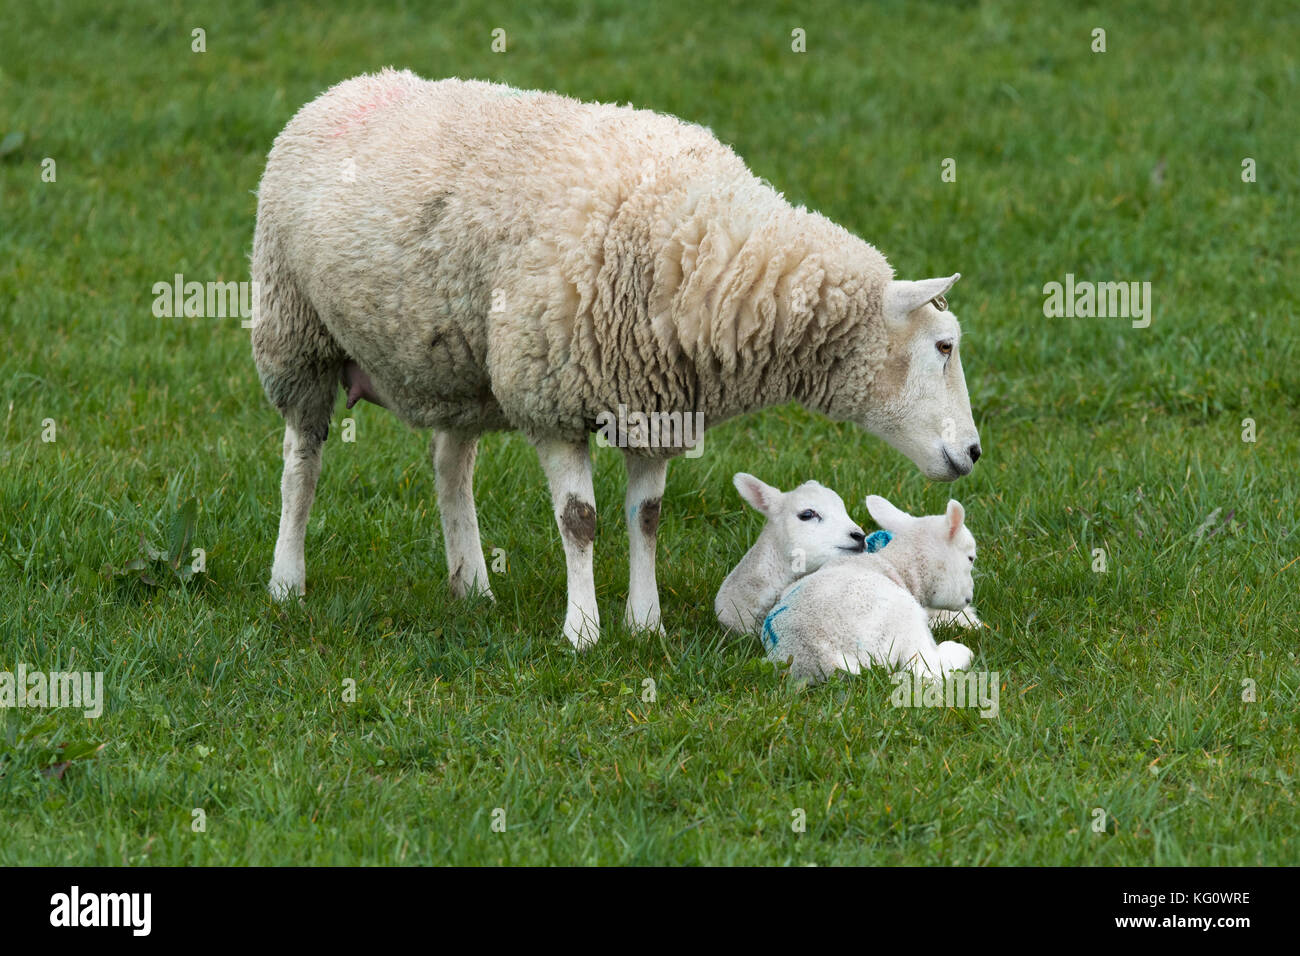 Close-up of 1 sheep (ewe) & 2 lambs in a farm field in springtime. Youngsters are snuggled together on grass, - Stock Image